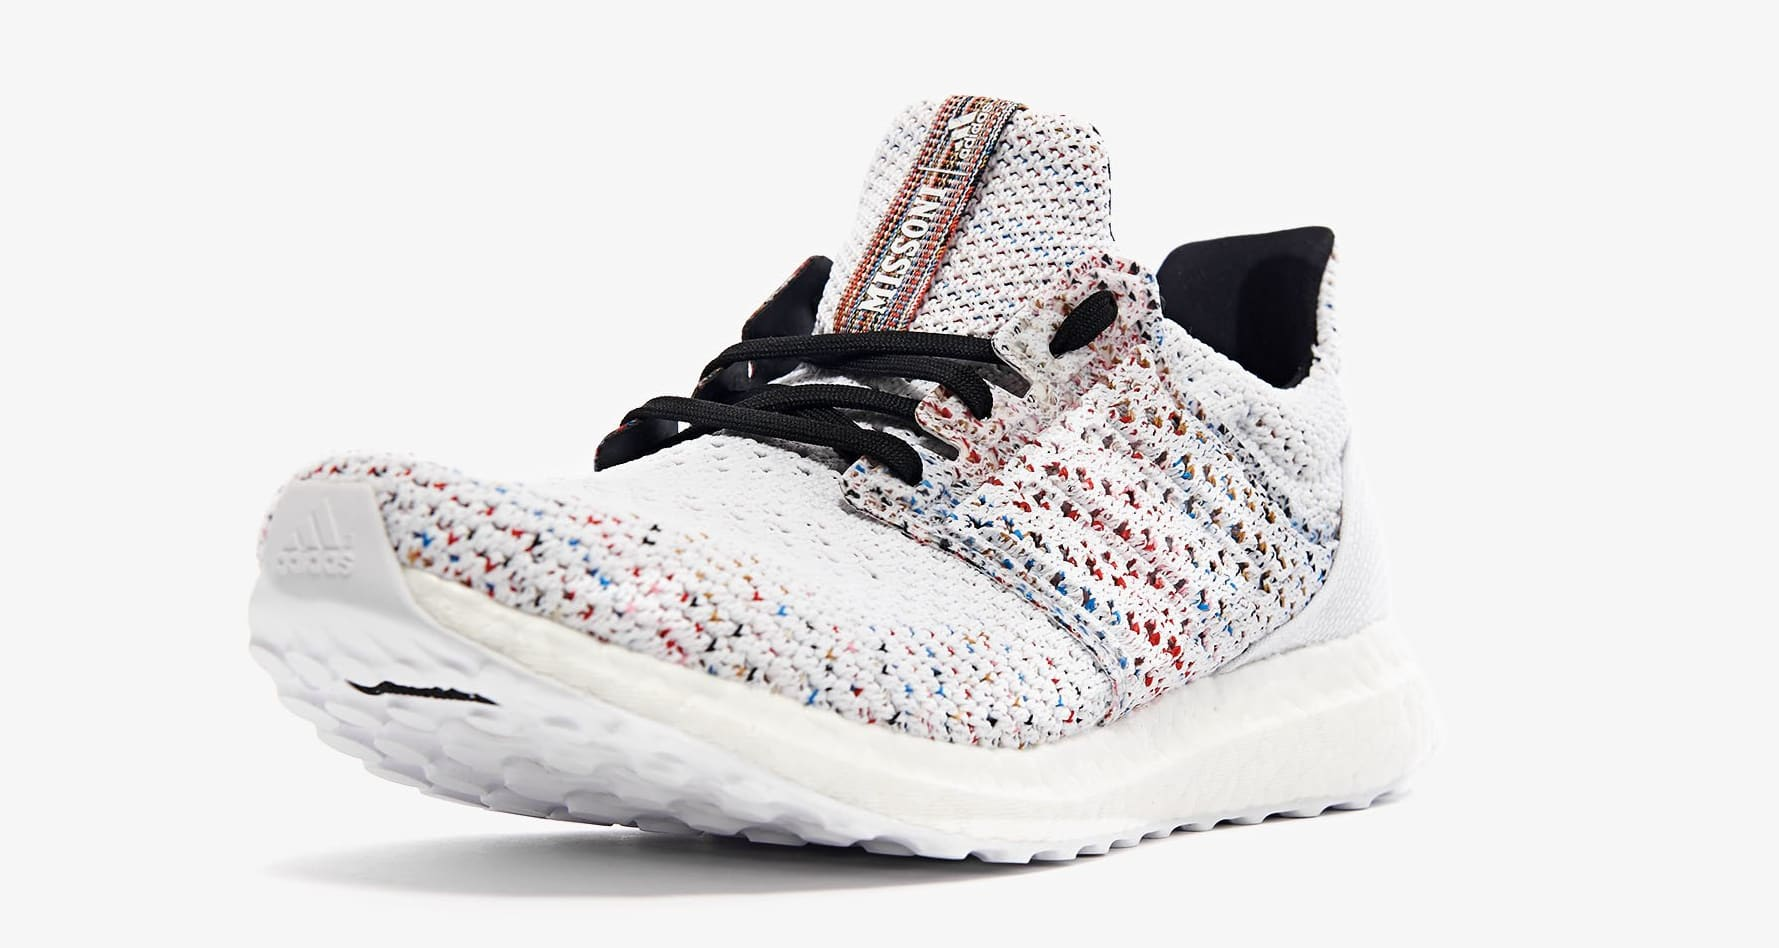 Missoni x Adidas Ultra Boost Clima D97744 (Toe)